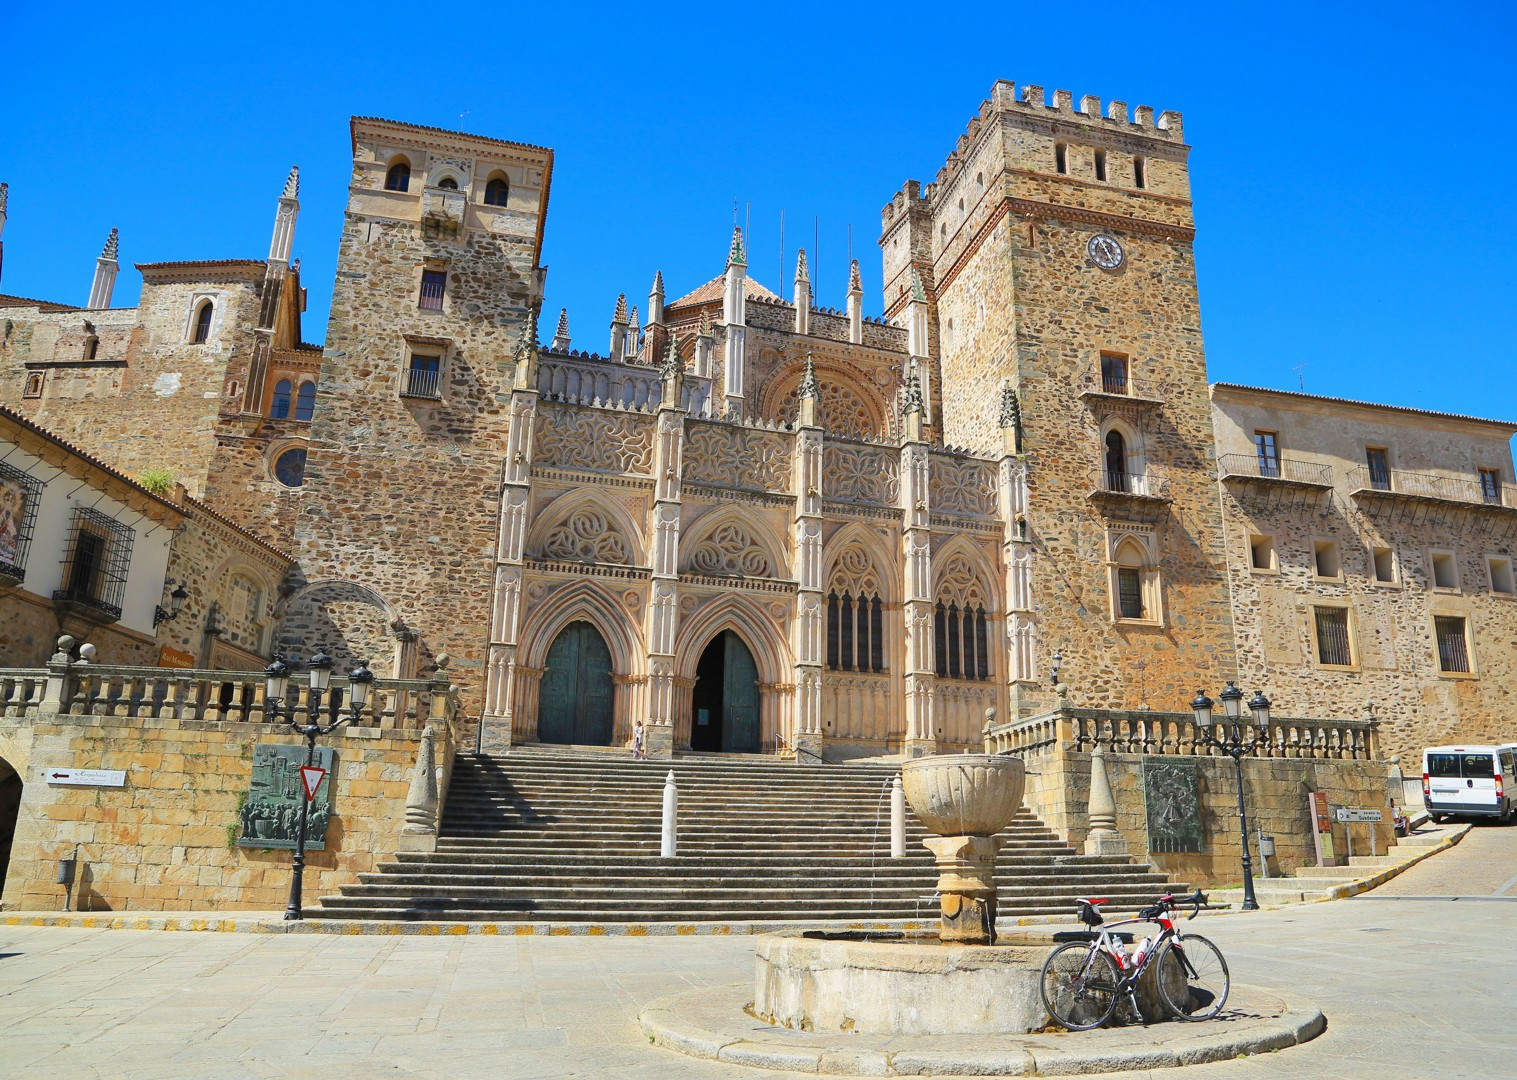 visit-guadaloupe-road-cycling-holiday-spain.jpg - Spain - Basque Country to Andalucia - North to South - 21 Day - Guided Road Cycling Holiday - Road Cycling